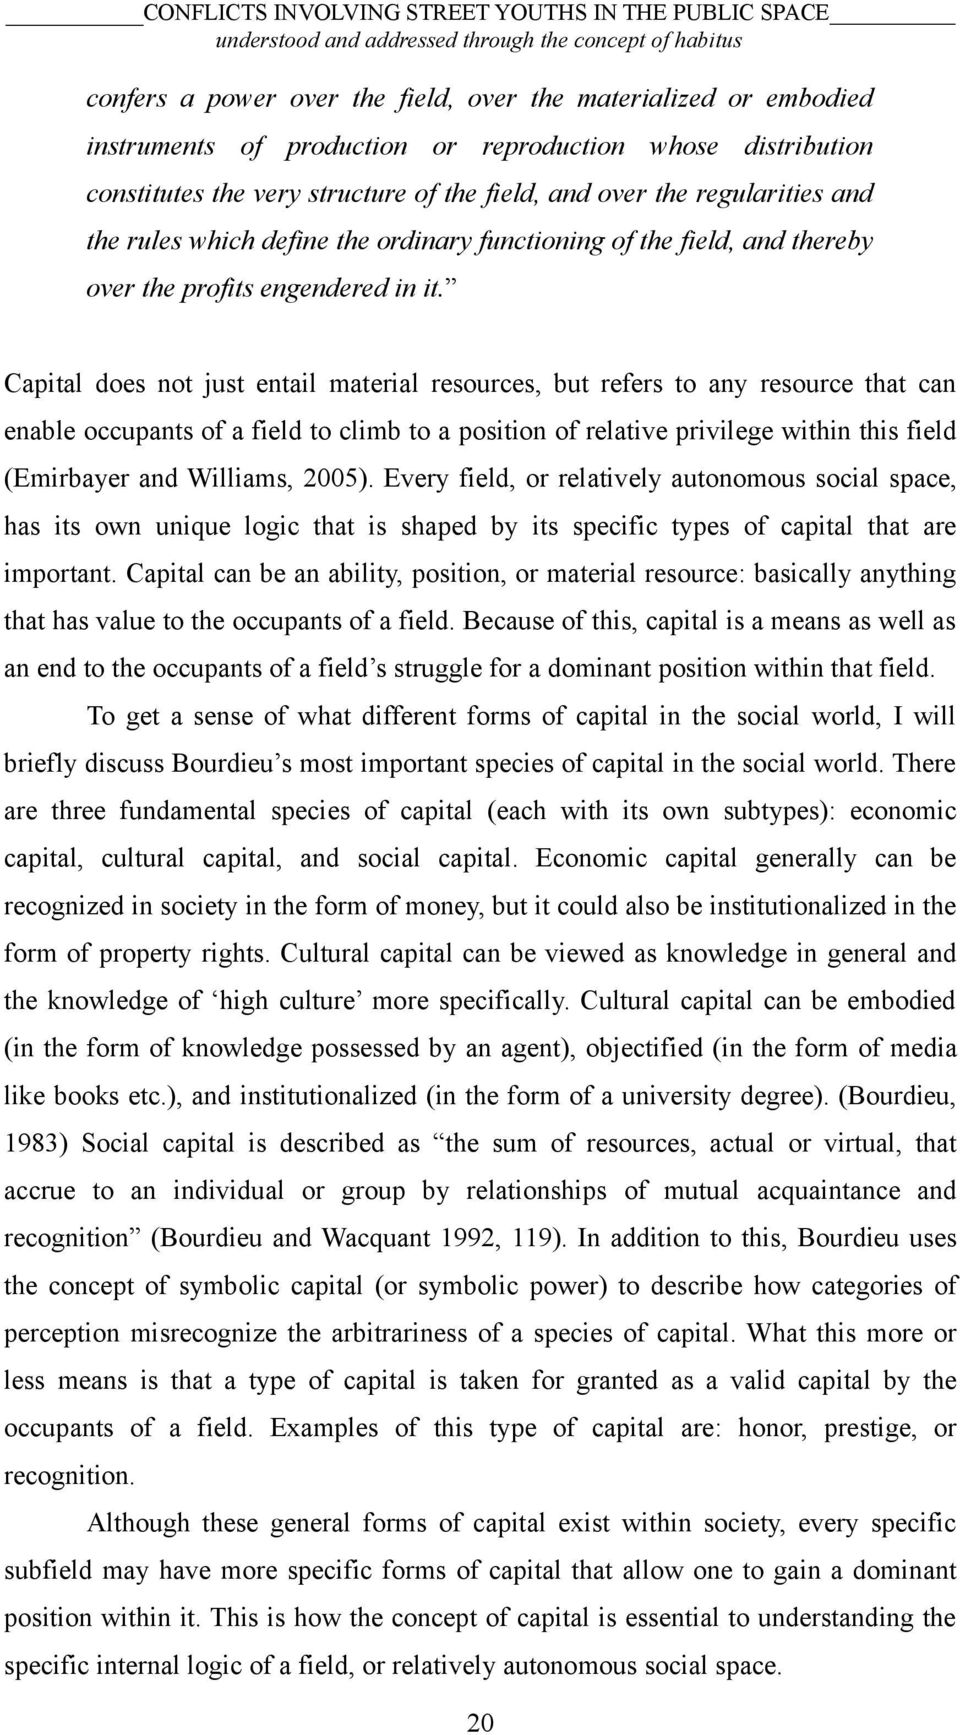 Capital does not just entail material resources, but refers to any resource that can enable occupants of a field to climb to a position of relative privilege within this field (Emirbayer and